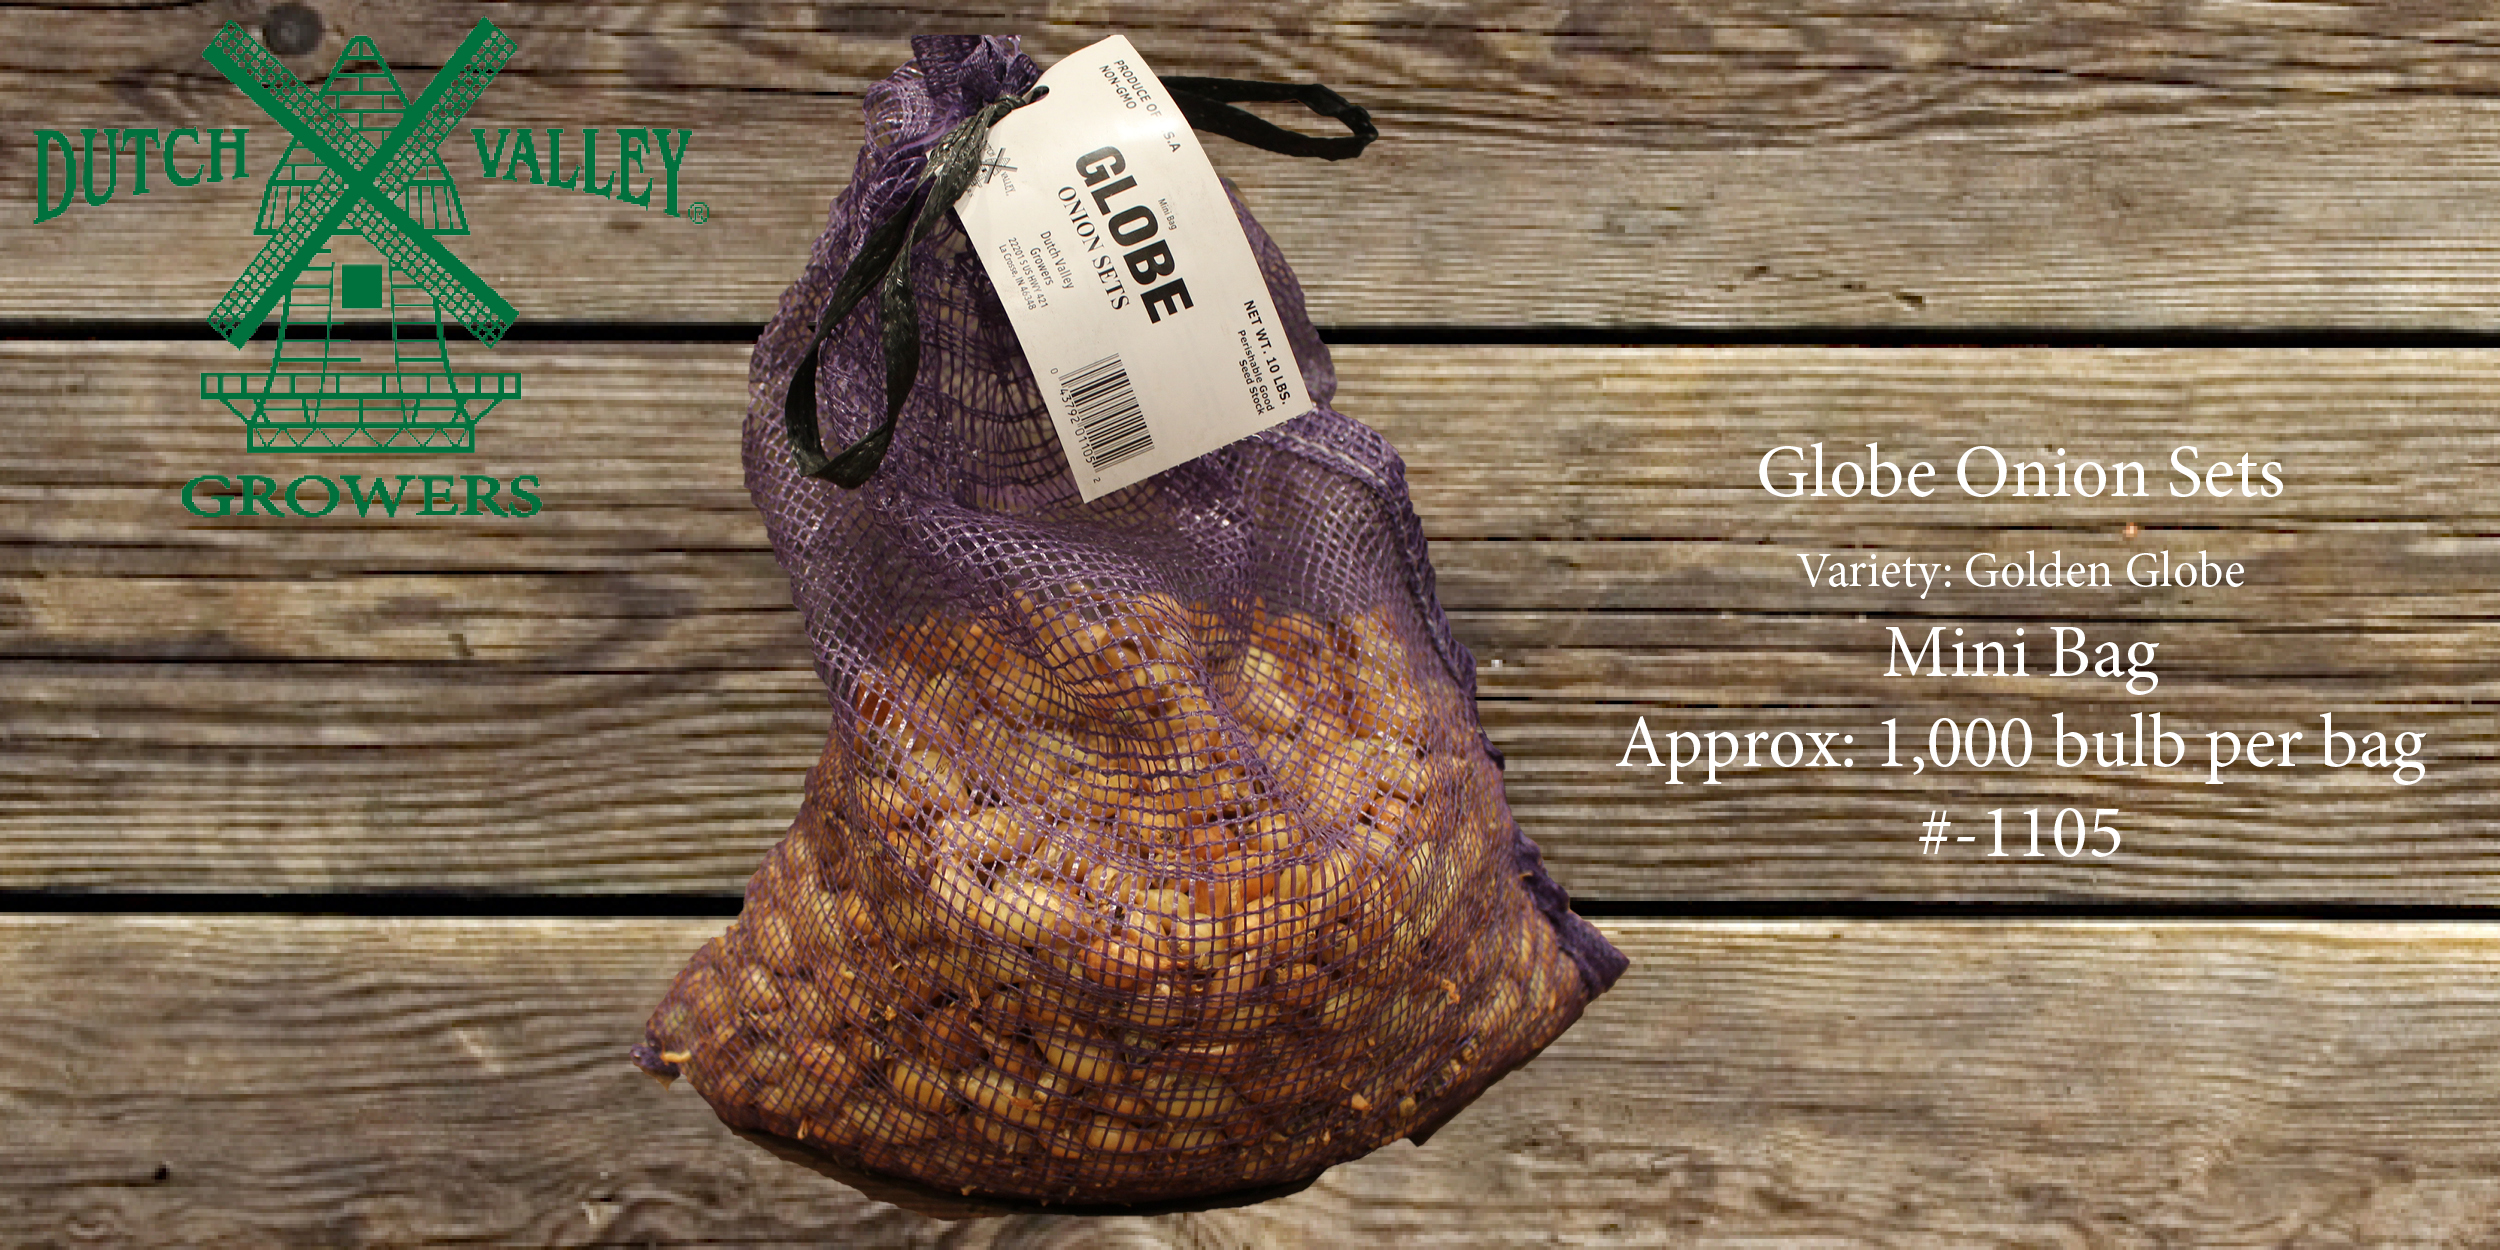 10# Globe Onion Sets Mini Bag